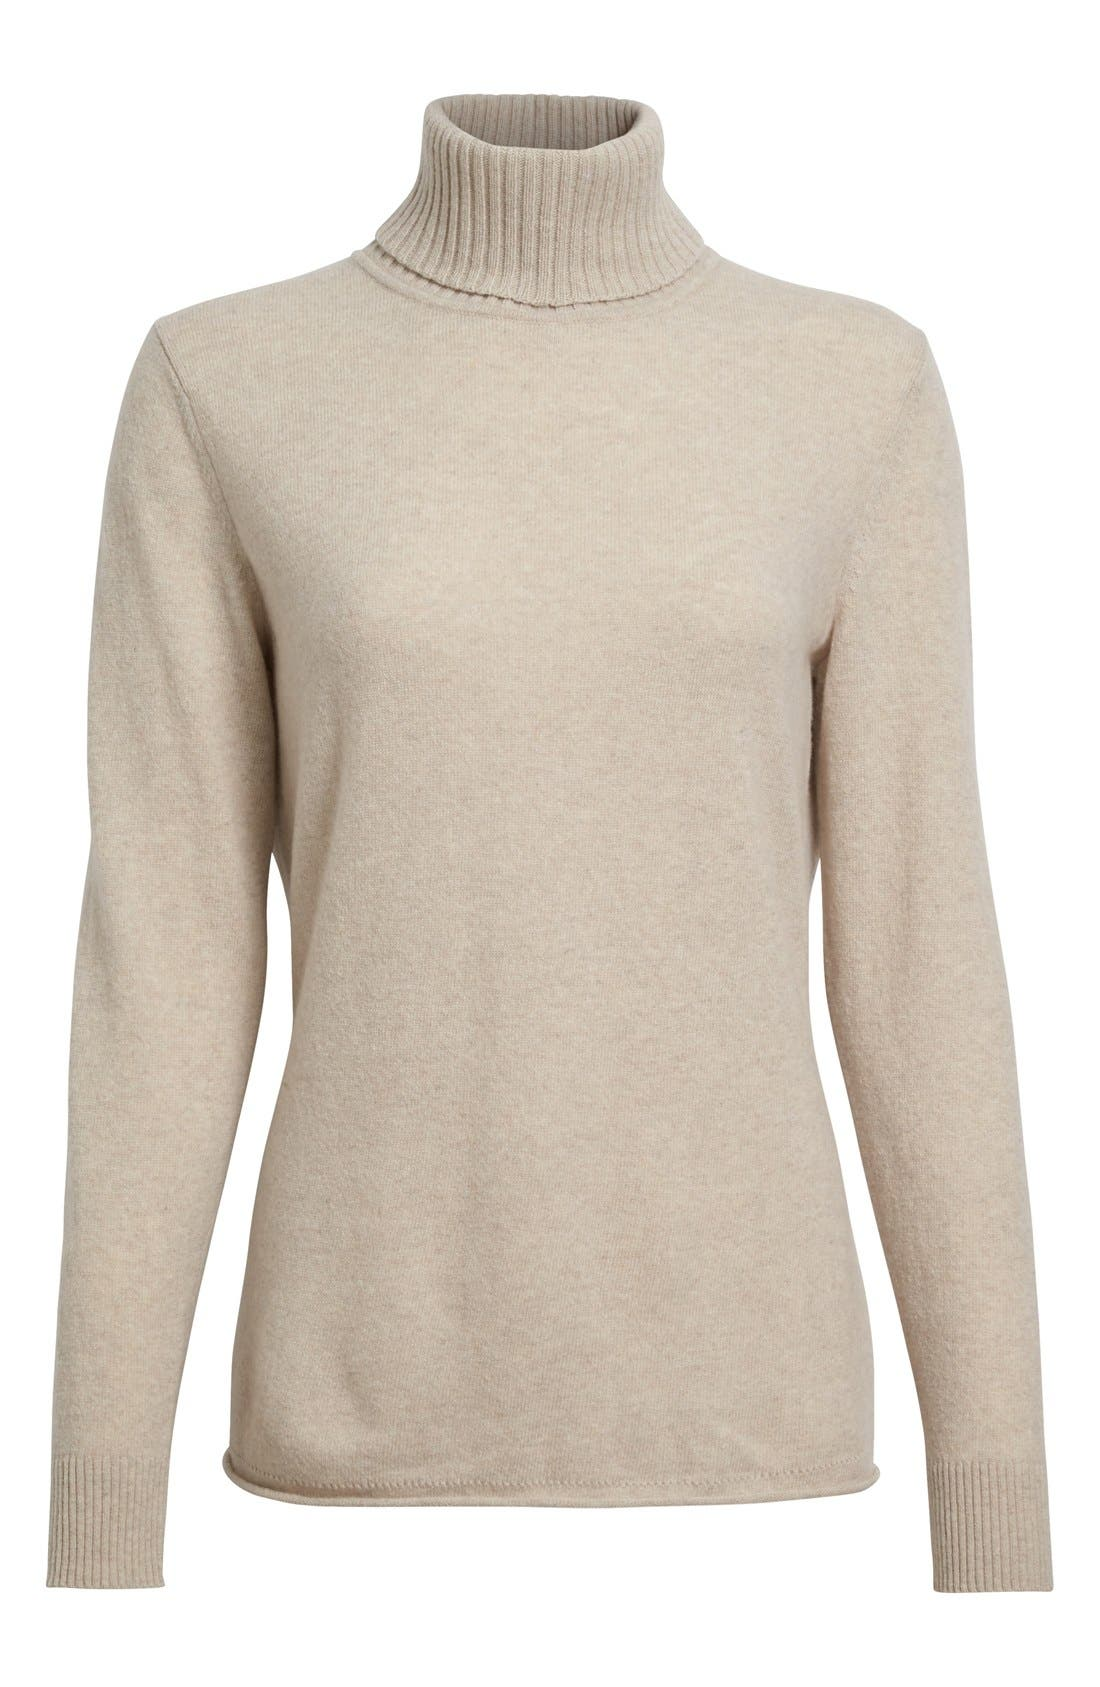 Alternate Image 4  - Lafayette 148 New York Wool & Cashmere Turtleneck Sweater